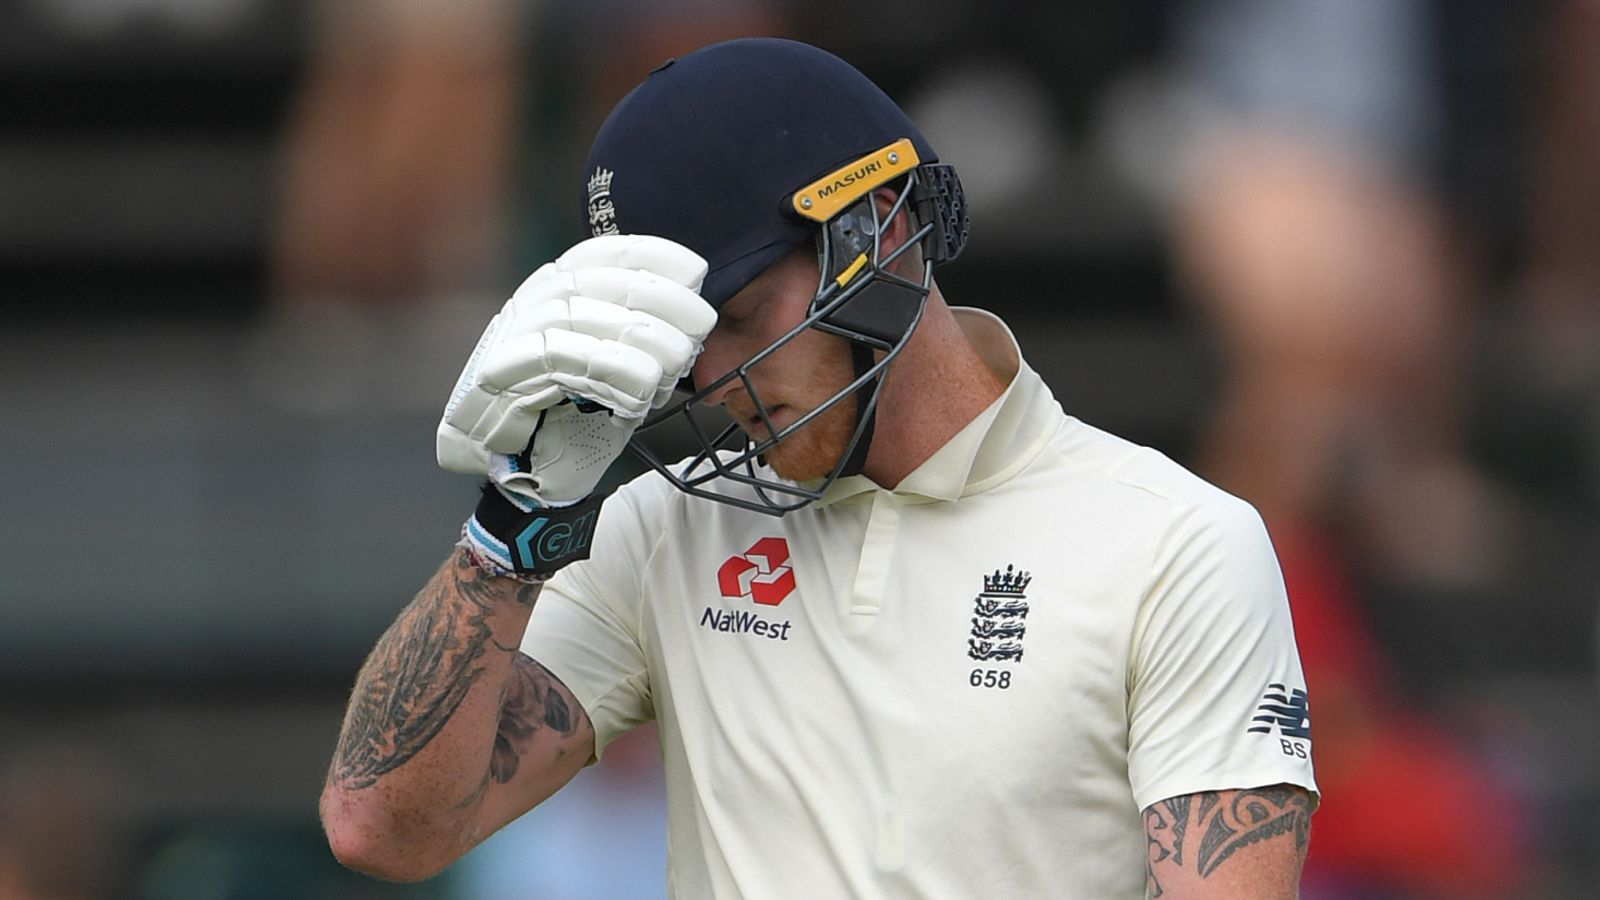 Ben Stokes awaits likely disciplinary action after swearing at spectator in fourth Test - Sky Sports